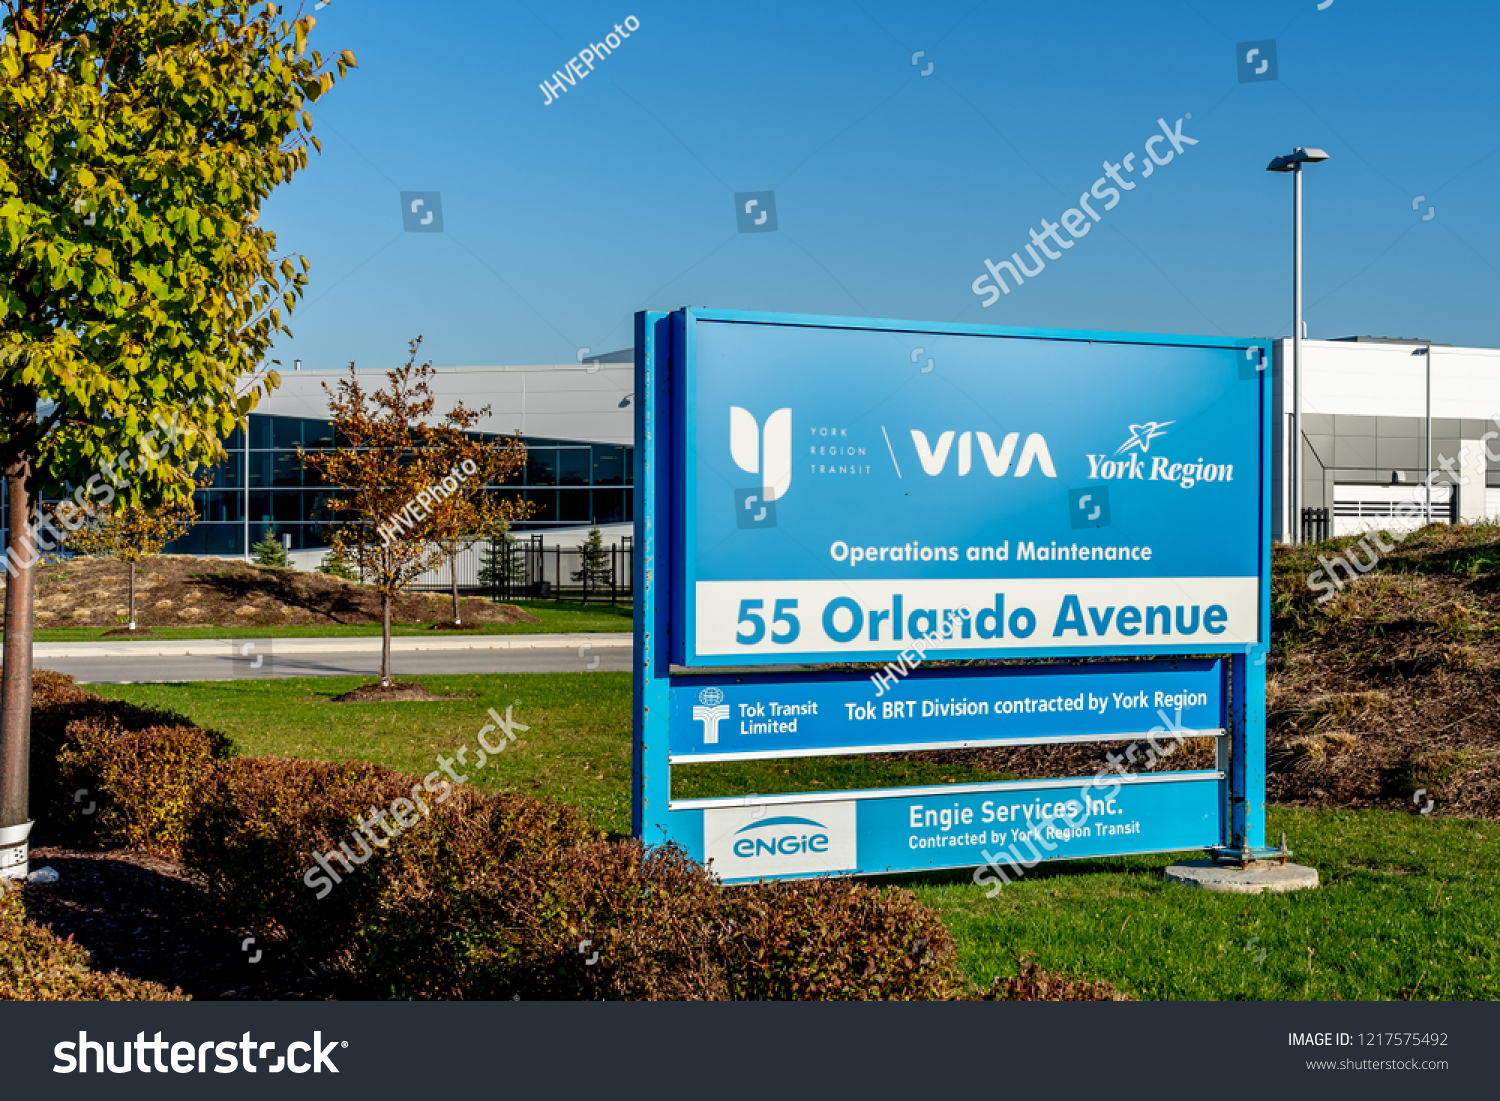 3bc9644e85d7 Richmond Hill, Ontario, Canada - October 30, 2018: Sign of York Region